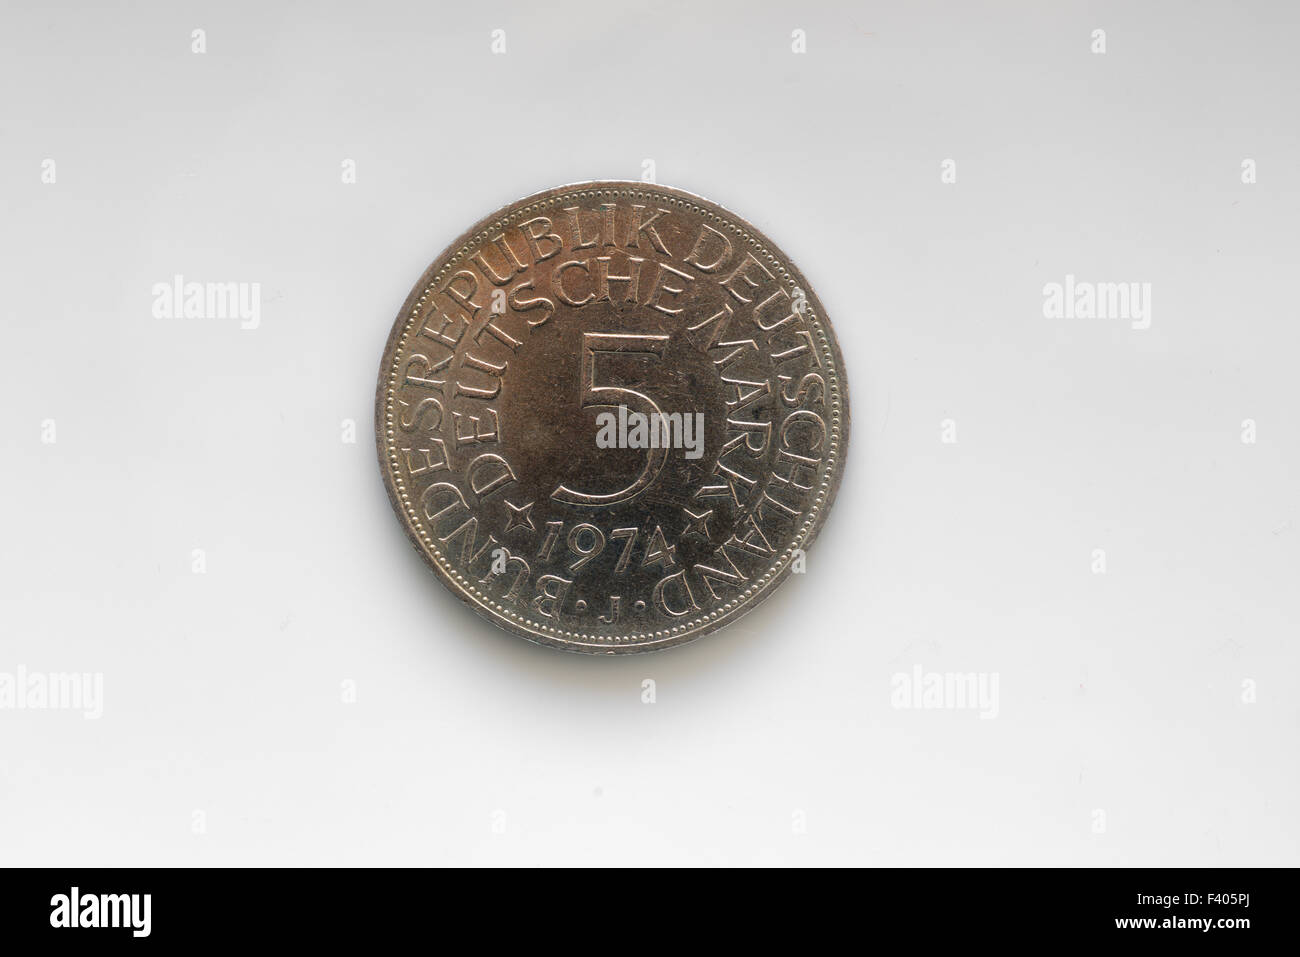 5 Mark, five DM, silver coin - Stock Image